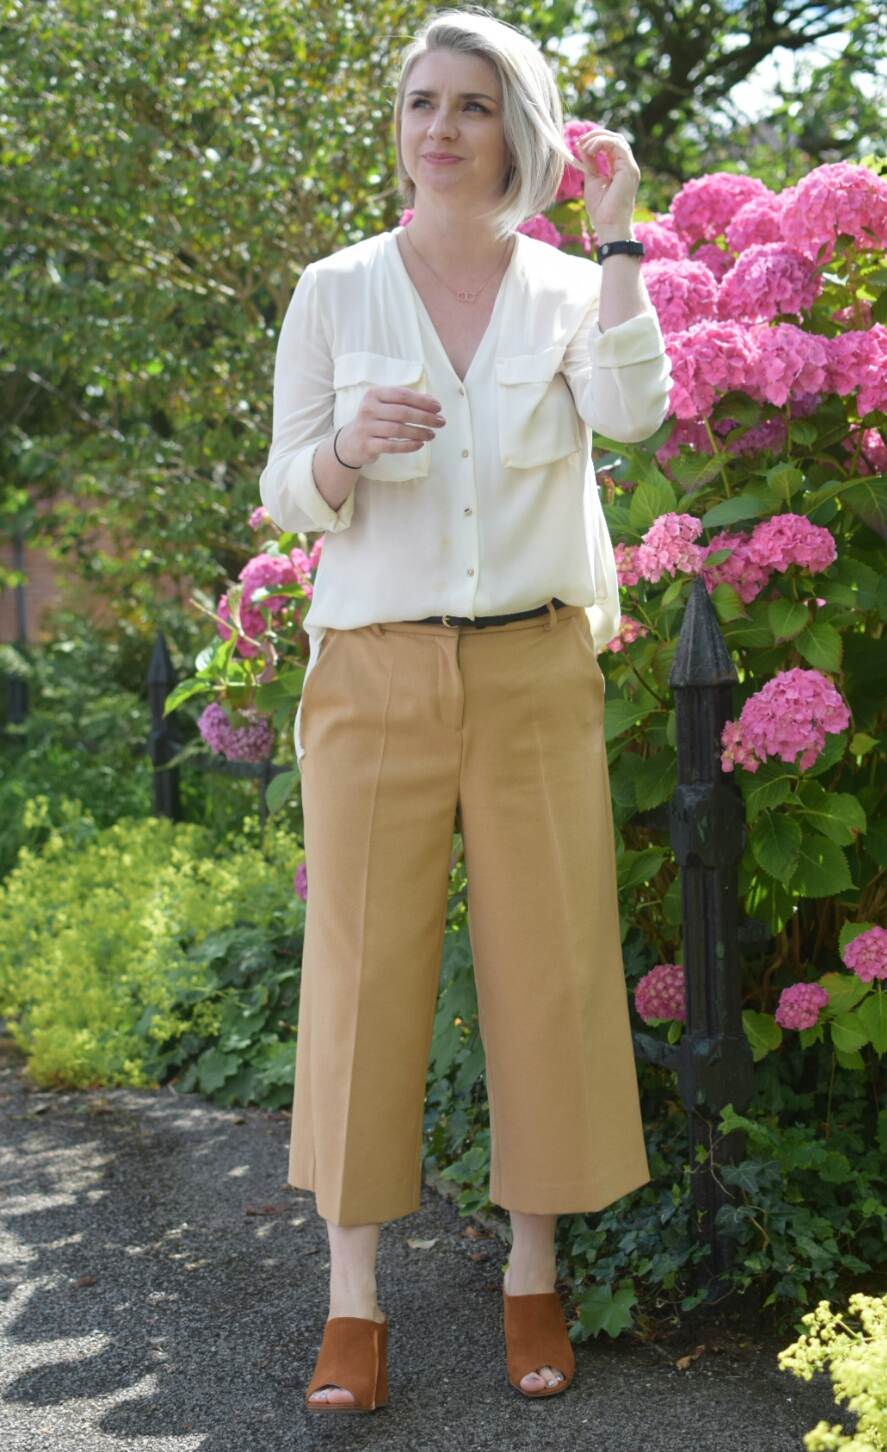 Zara White Shirt, RiverIsland Camel Culottes and Miss Selfridge Camel Mules.